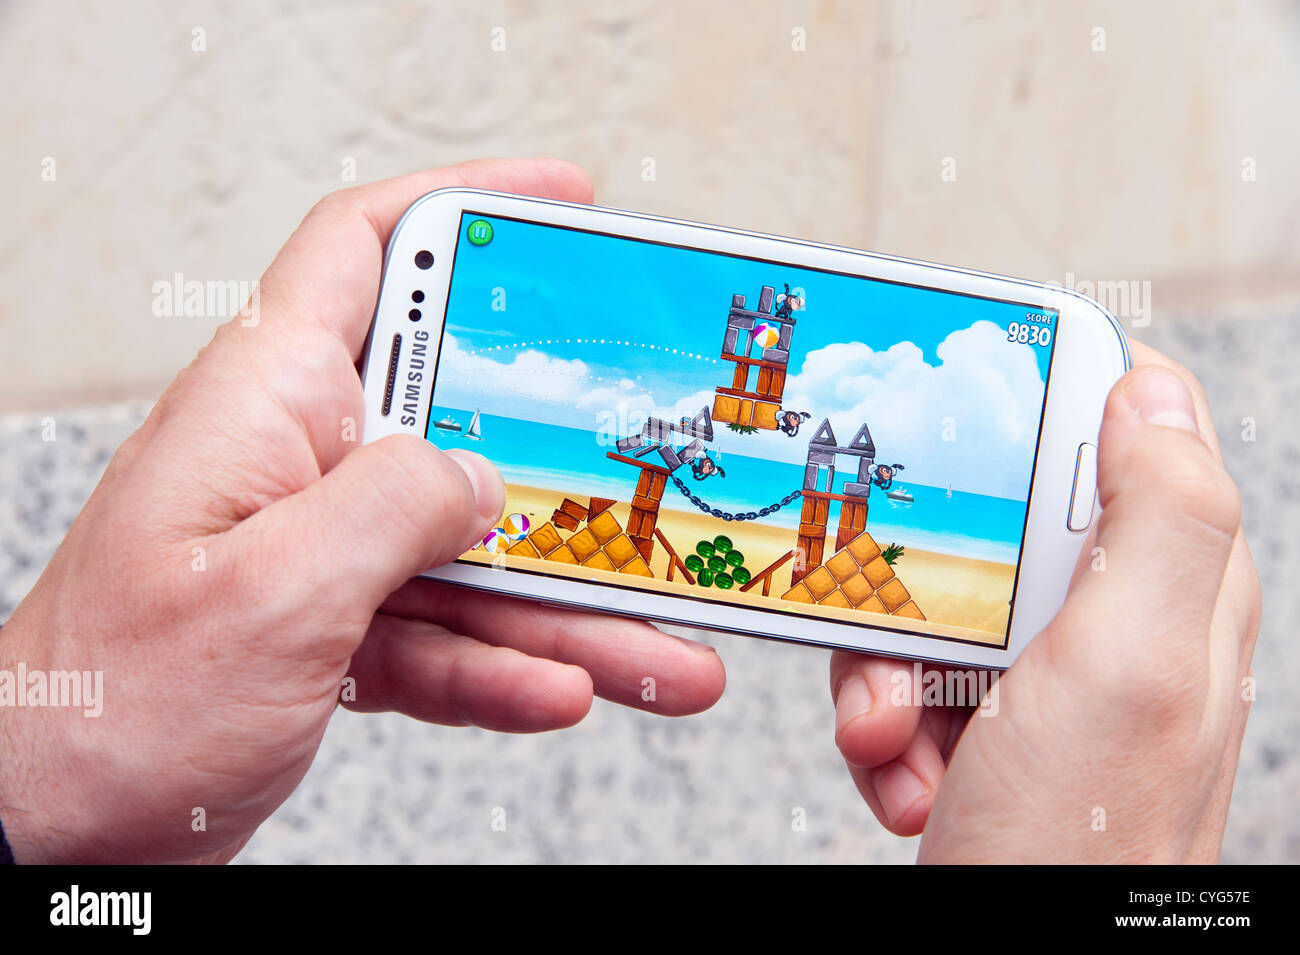 Playing Angry Birds game on Samsung Galaxy S3 smartphone - Stock Image